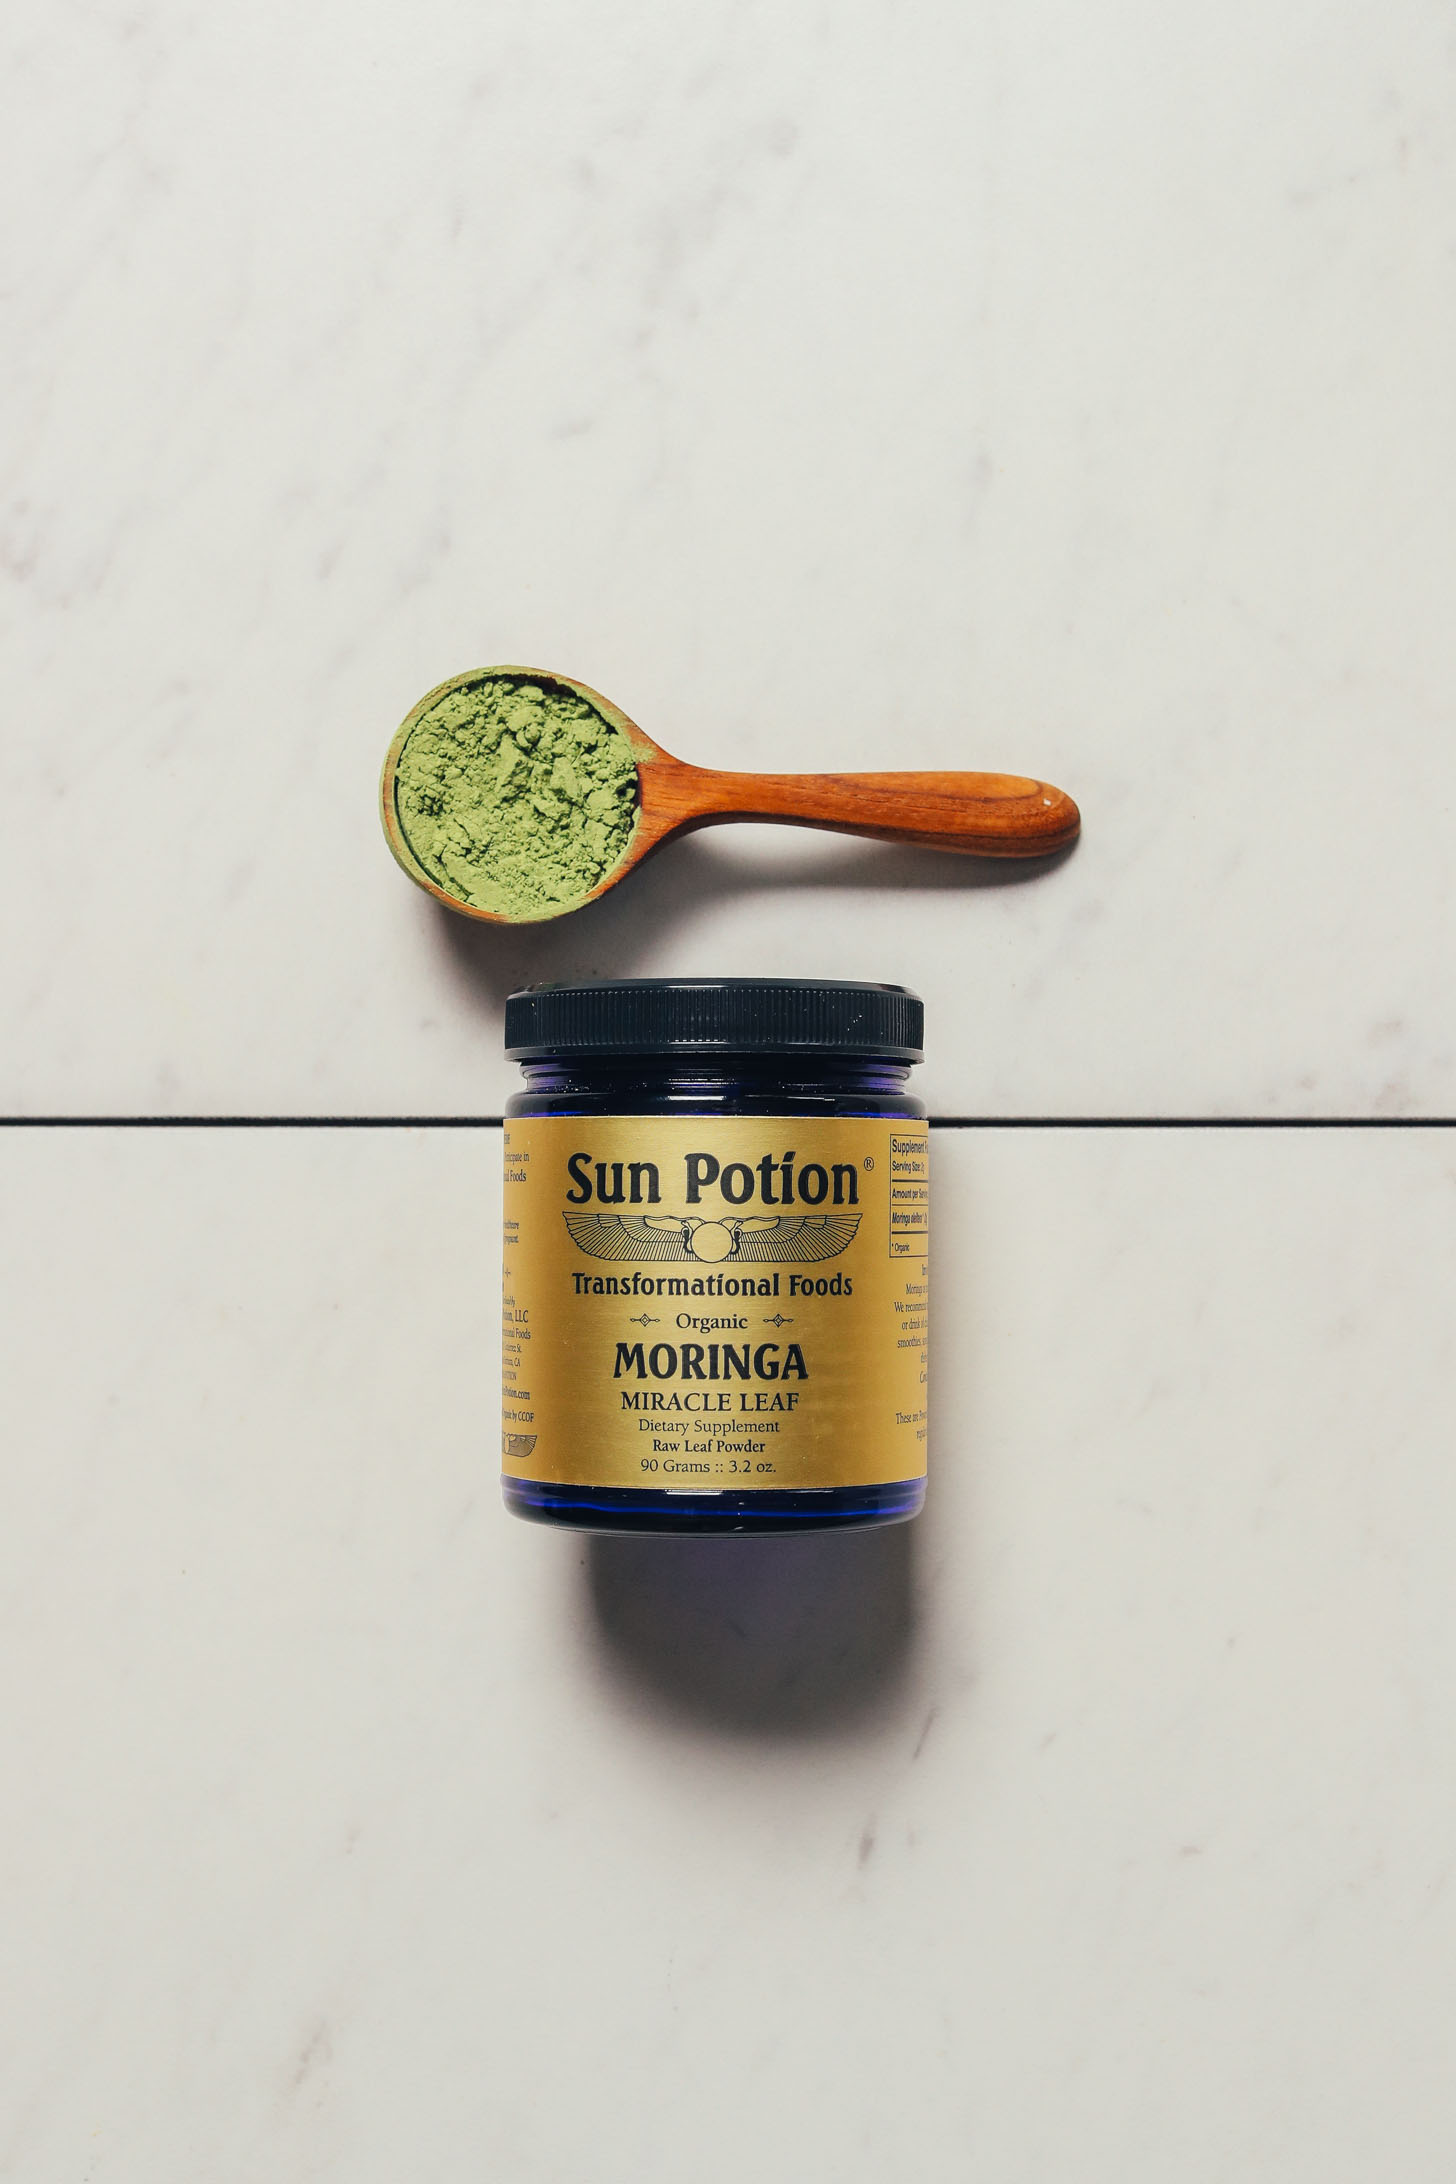 Spoonful and jar of Sun Potion Moringa Powder for our review of the best moringa powder brands